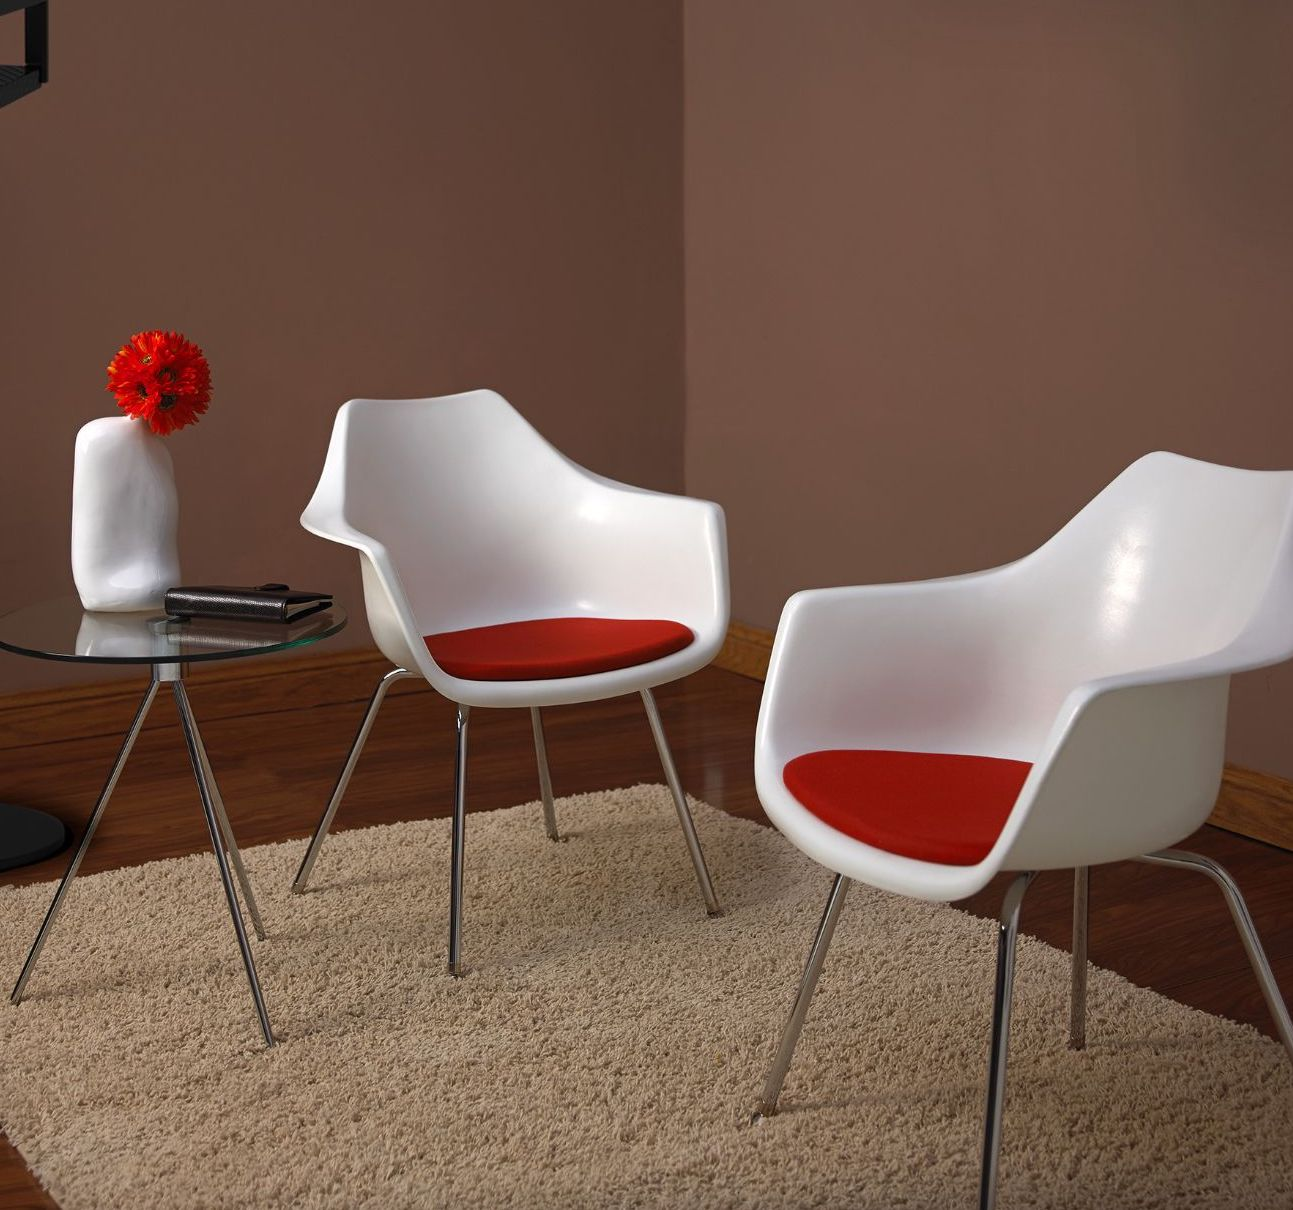 ki jubi guest chairs in reception space